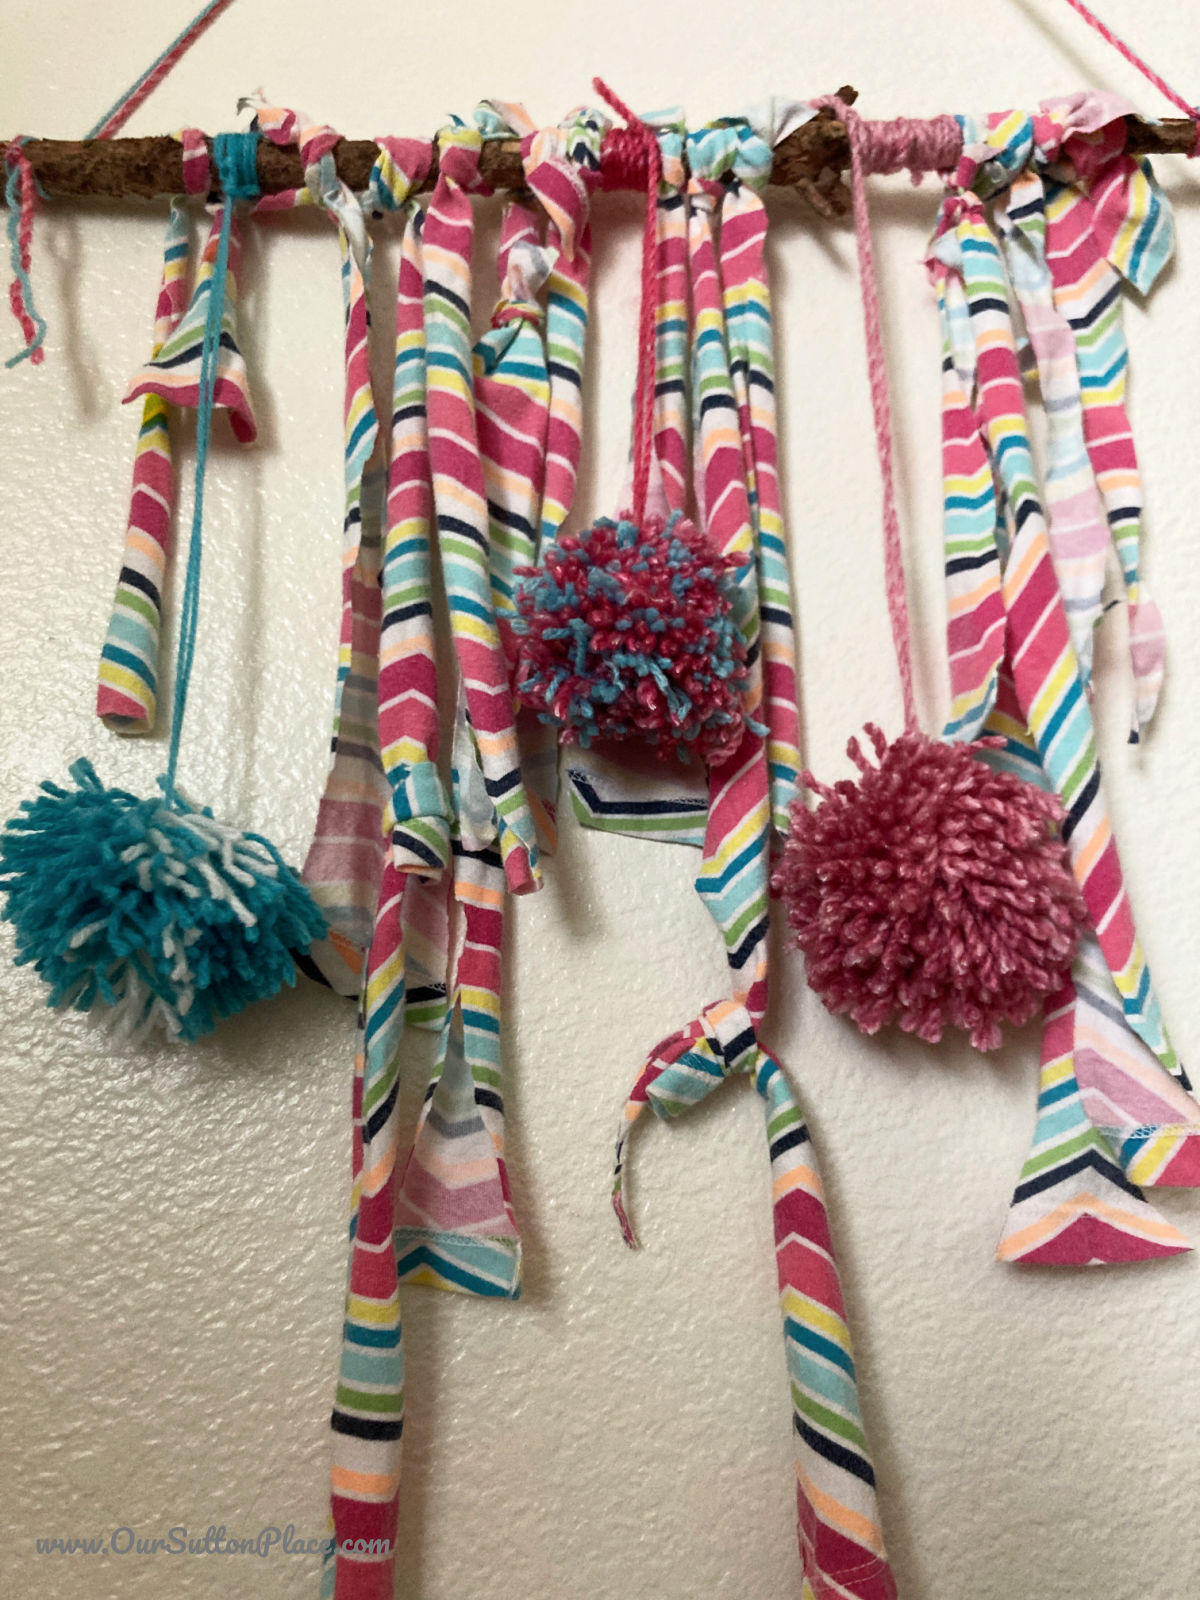 closeup of pom poms on a wall hanging